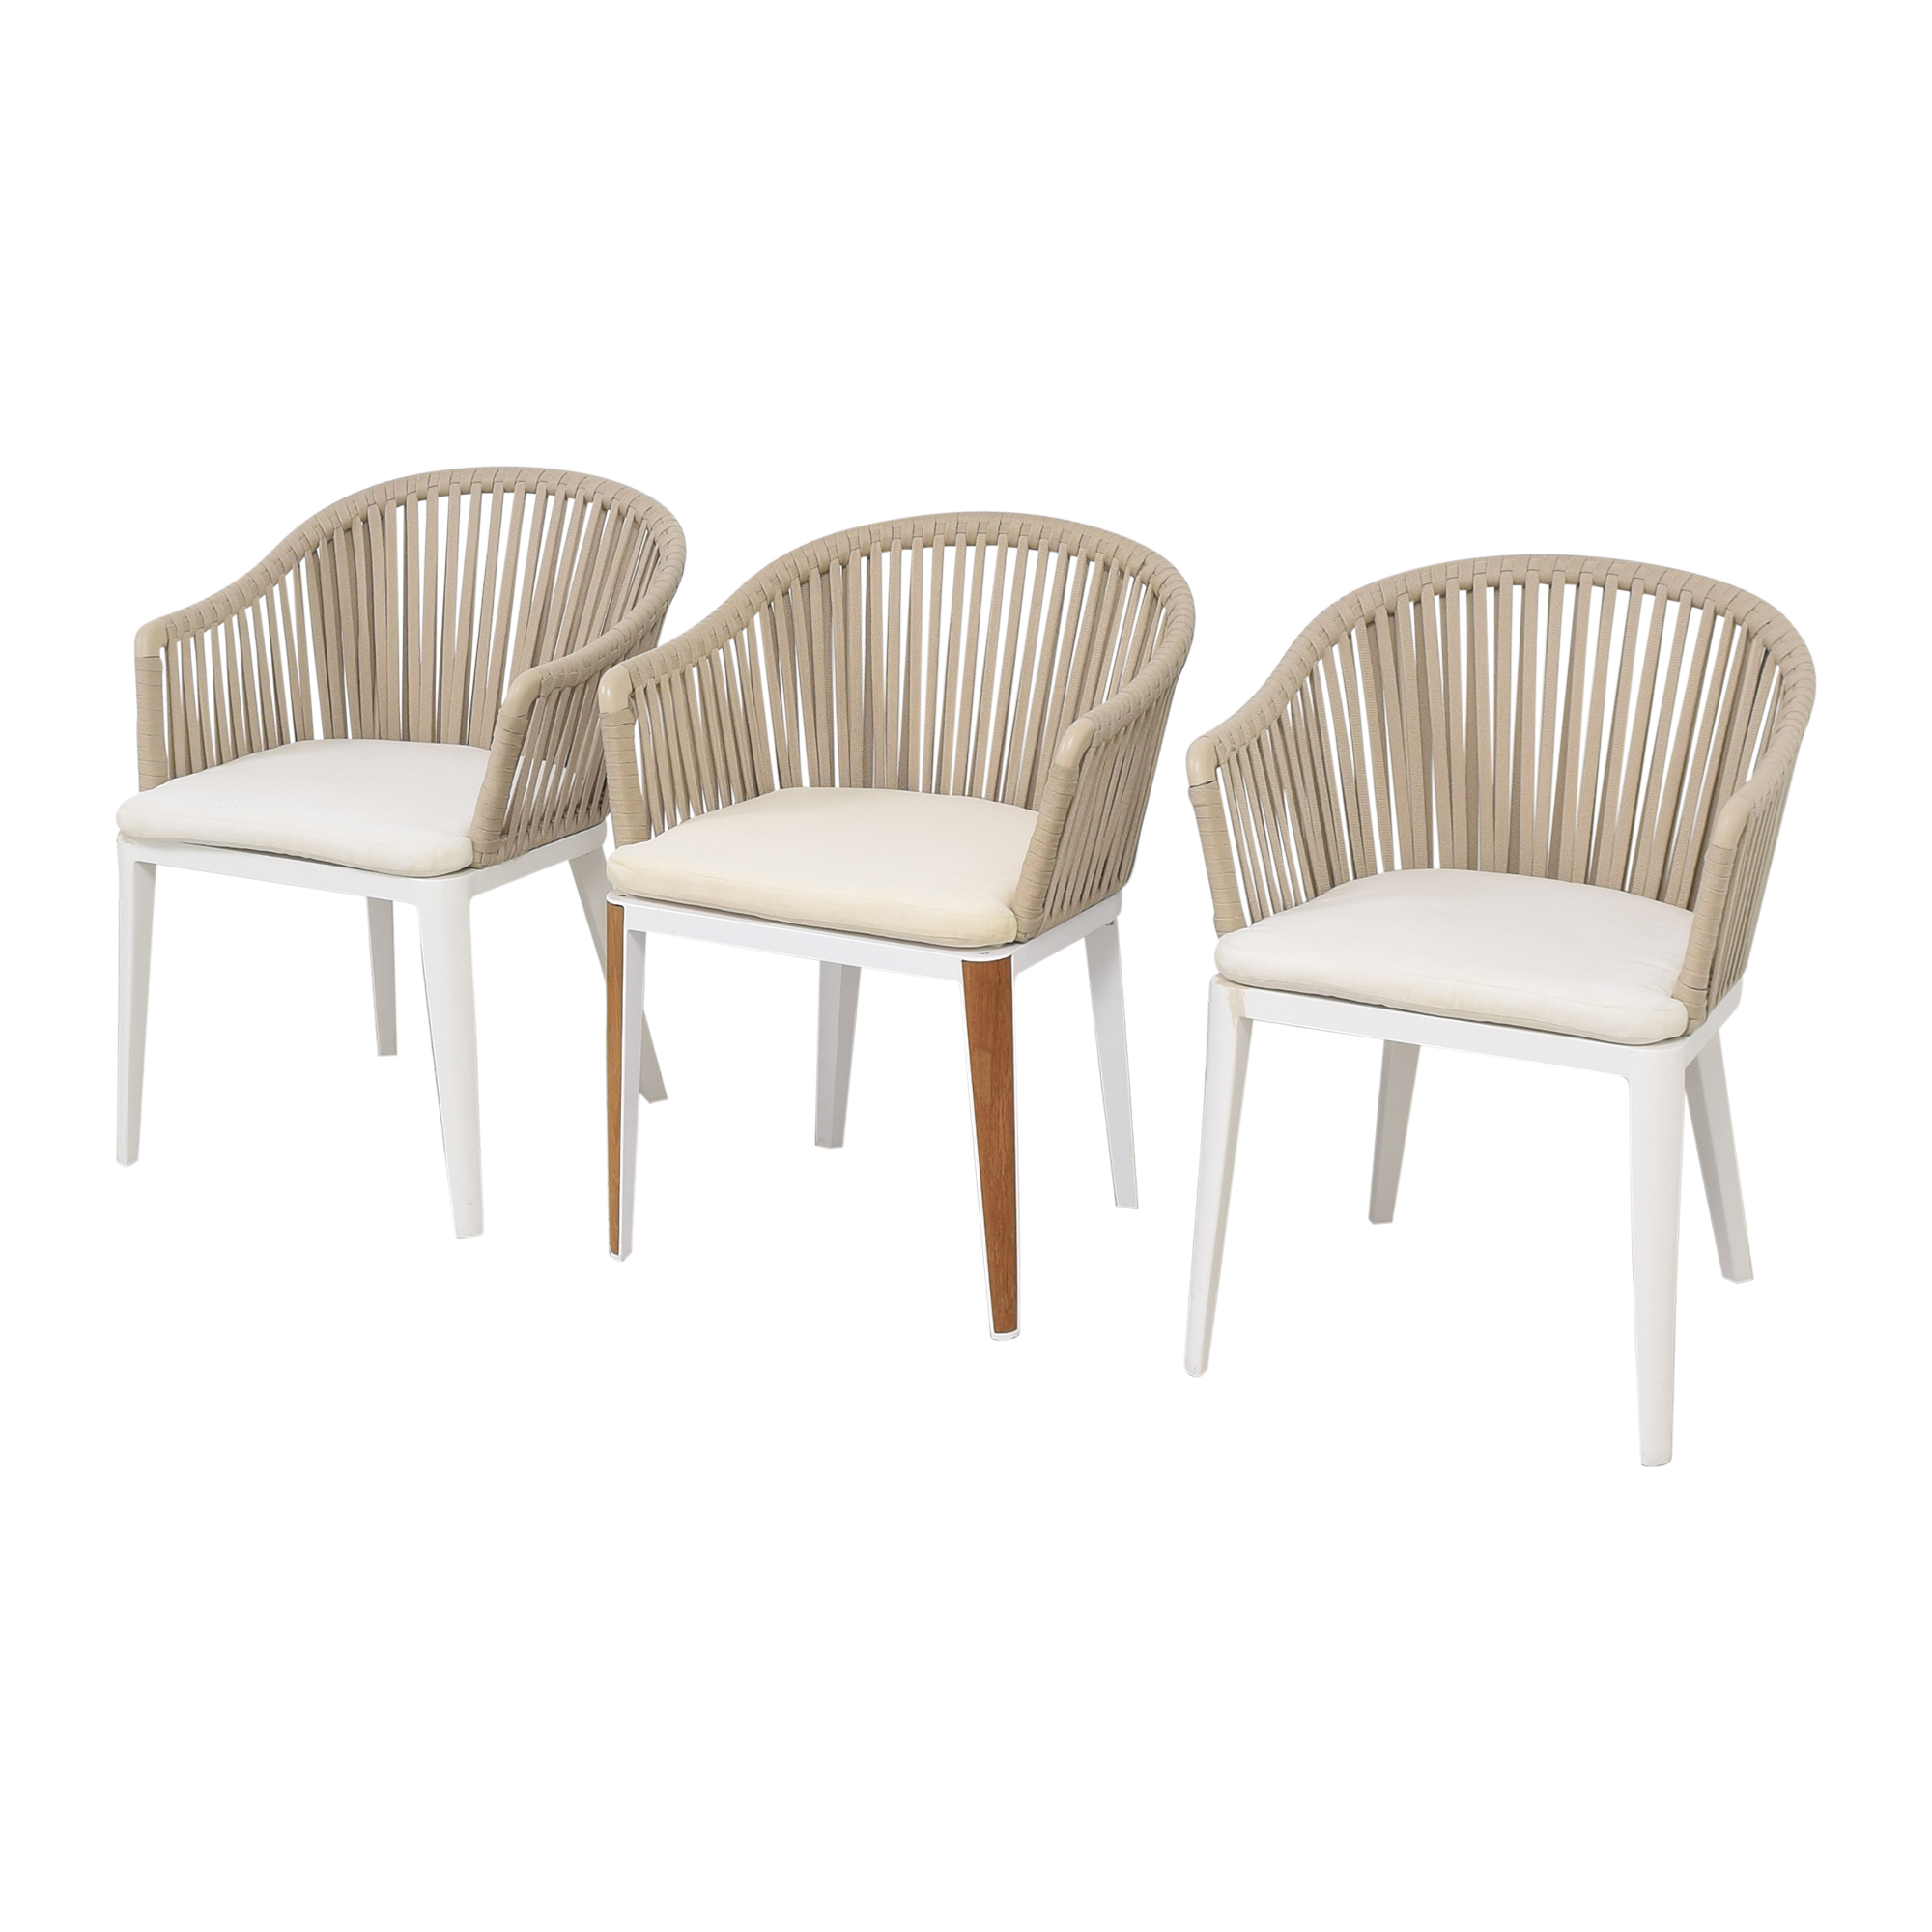 Control Brand Control Brand Barrel Chairs Dining Chairs